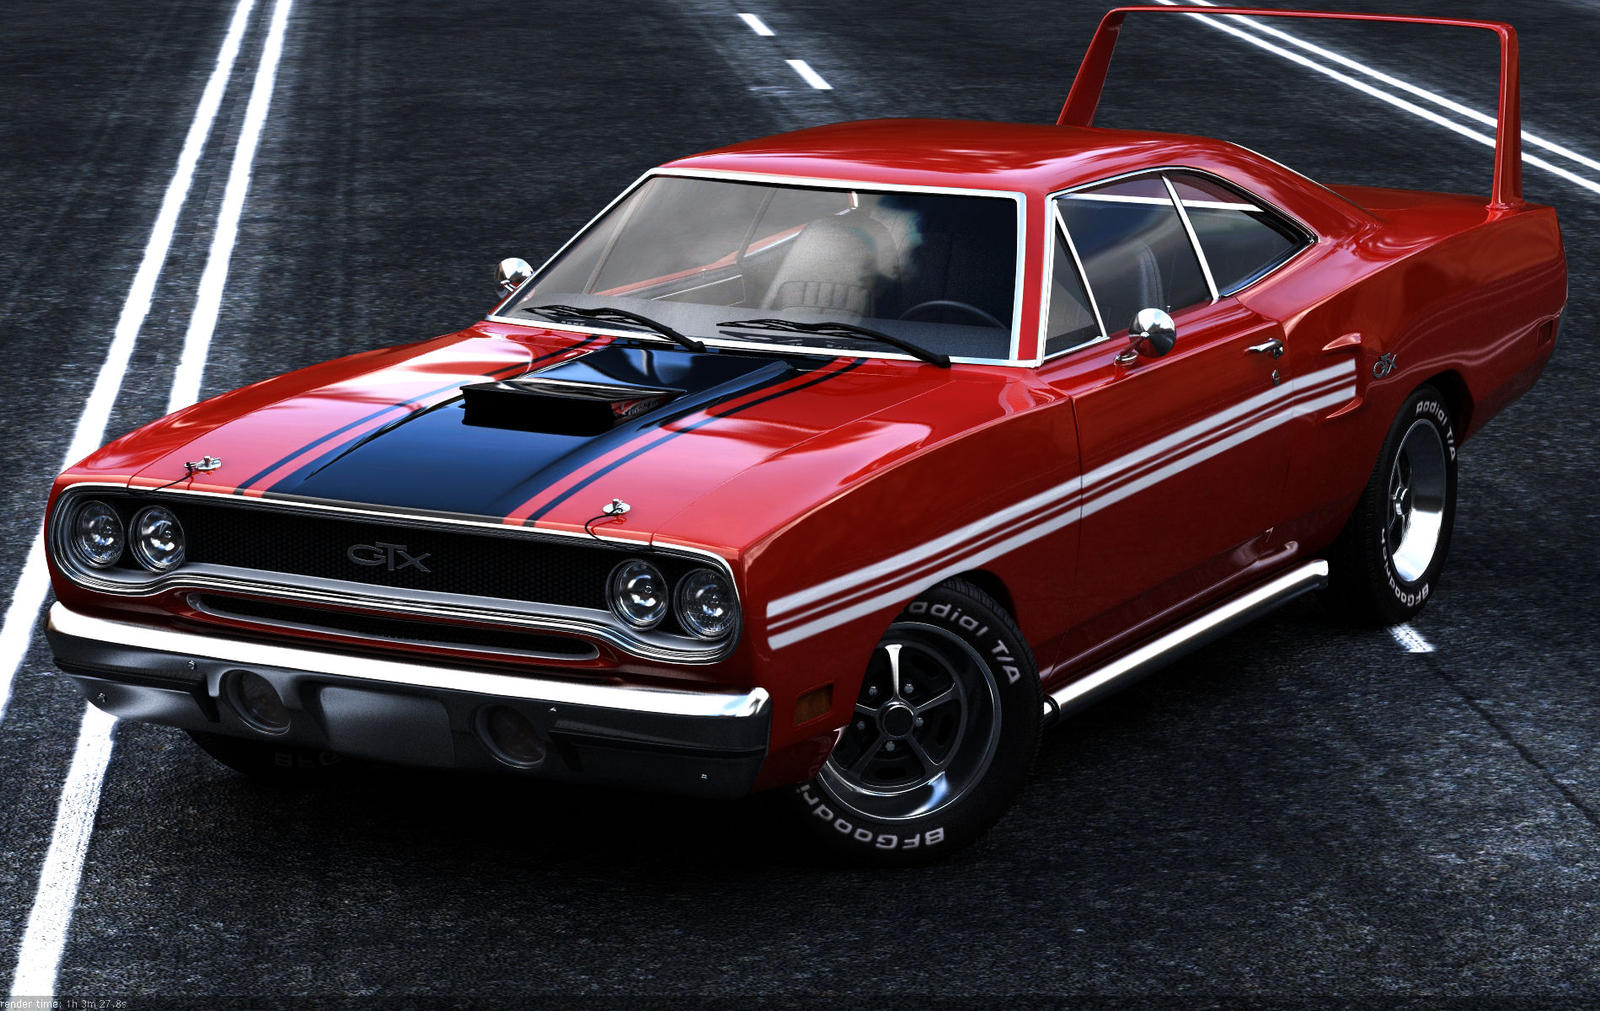 American Muscle cars GTX by Missionaryrdr